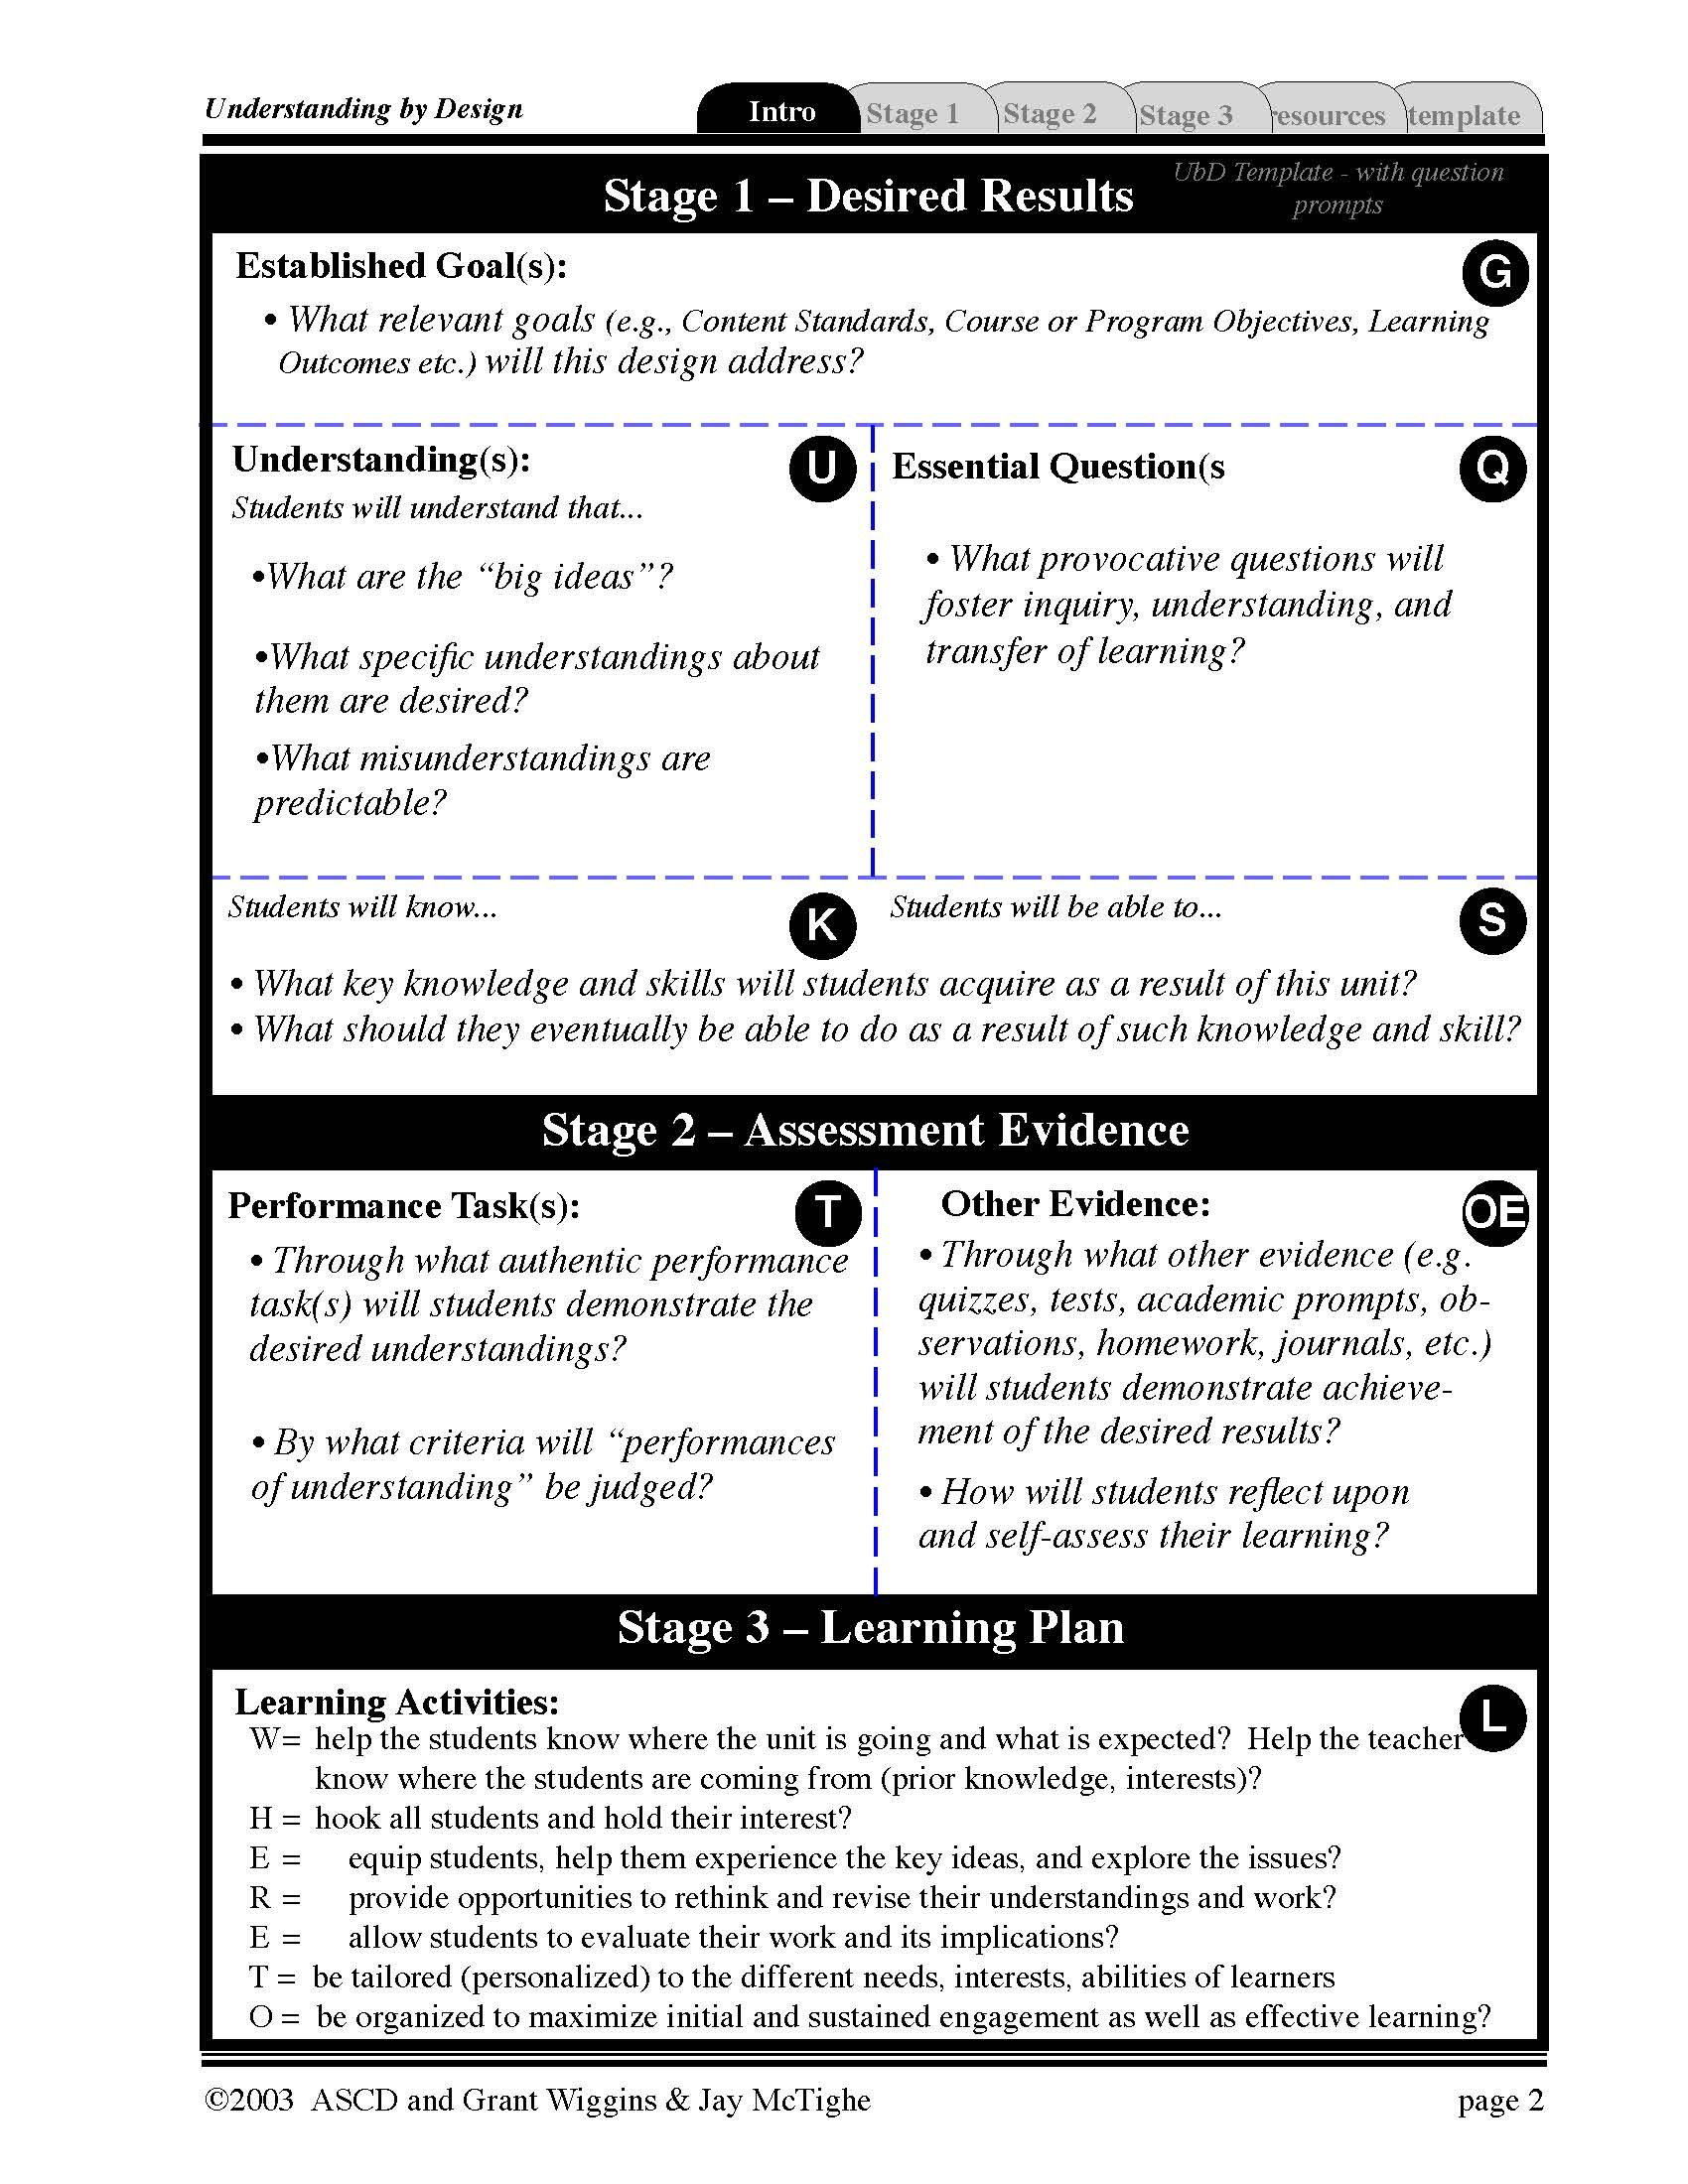 Ubd Plan Ed Theory And Pedogogy Pinterest School Instructional Strategies And Resource